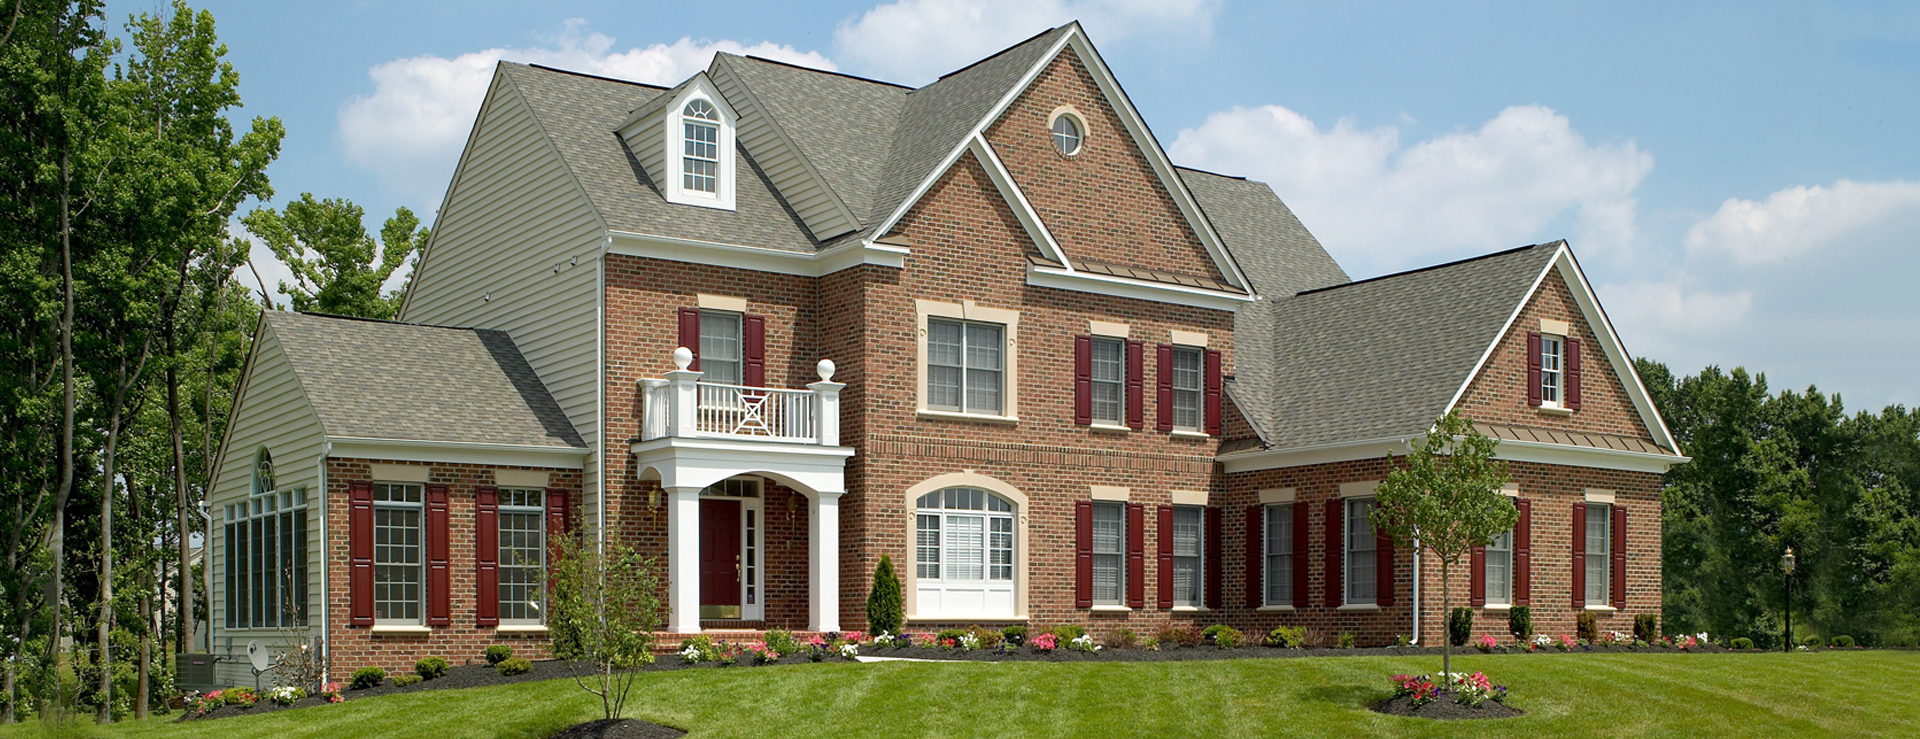 New luxury homes in loudoun county va and prince george 39 s for House builders in maryland